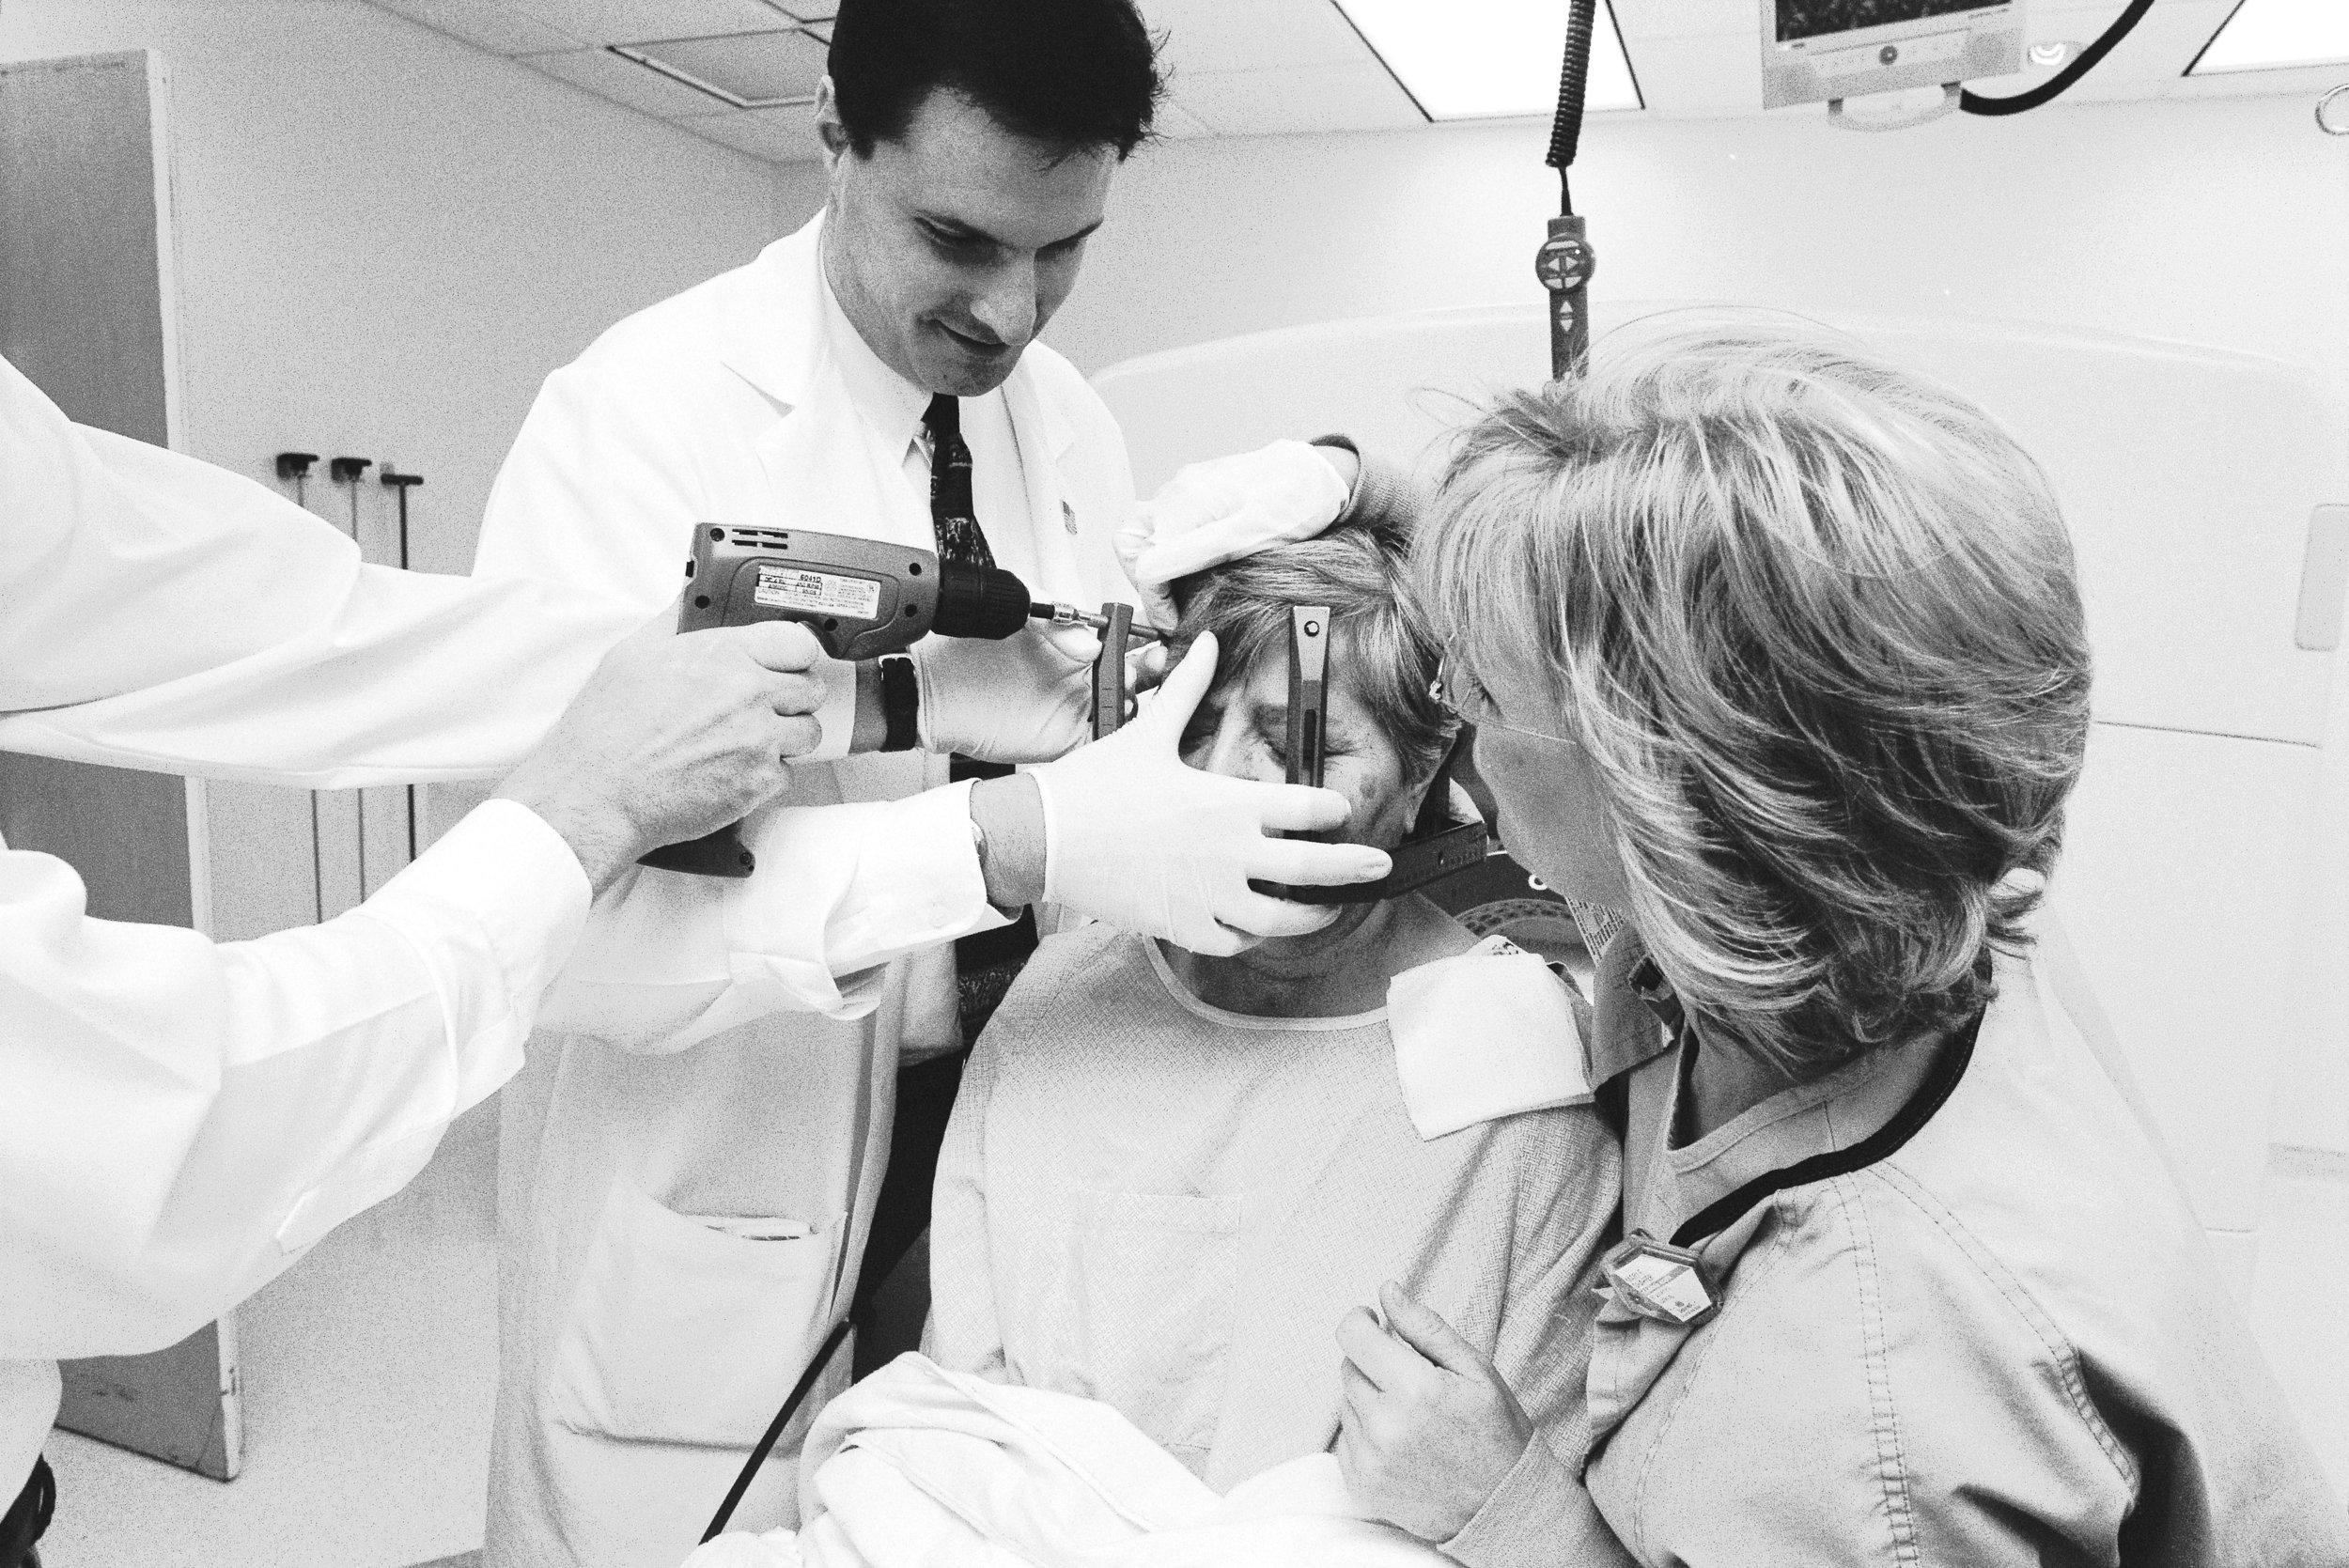 A patient having the frame removed from her head. Although it looks like the doctor is drilling the screws into the patient's head, he is actually using the drill to 'unscrew' the frame from her head.